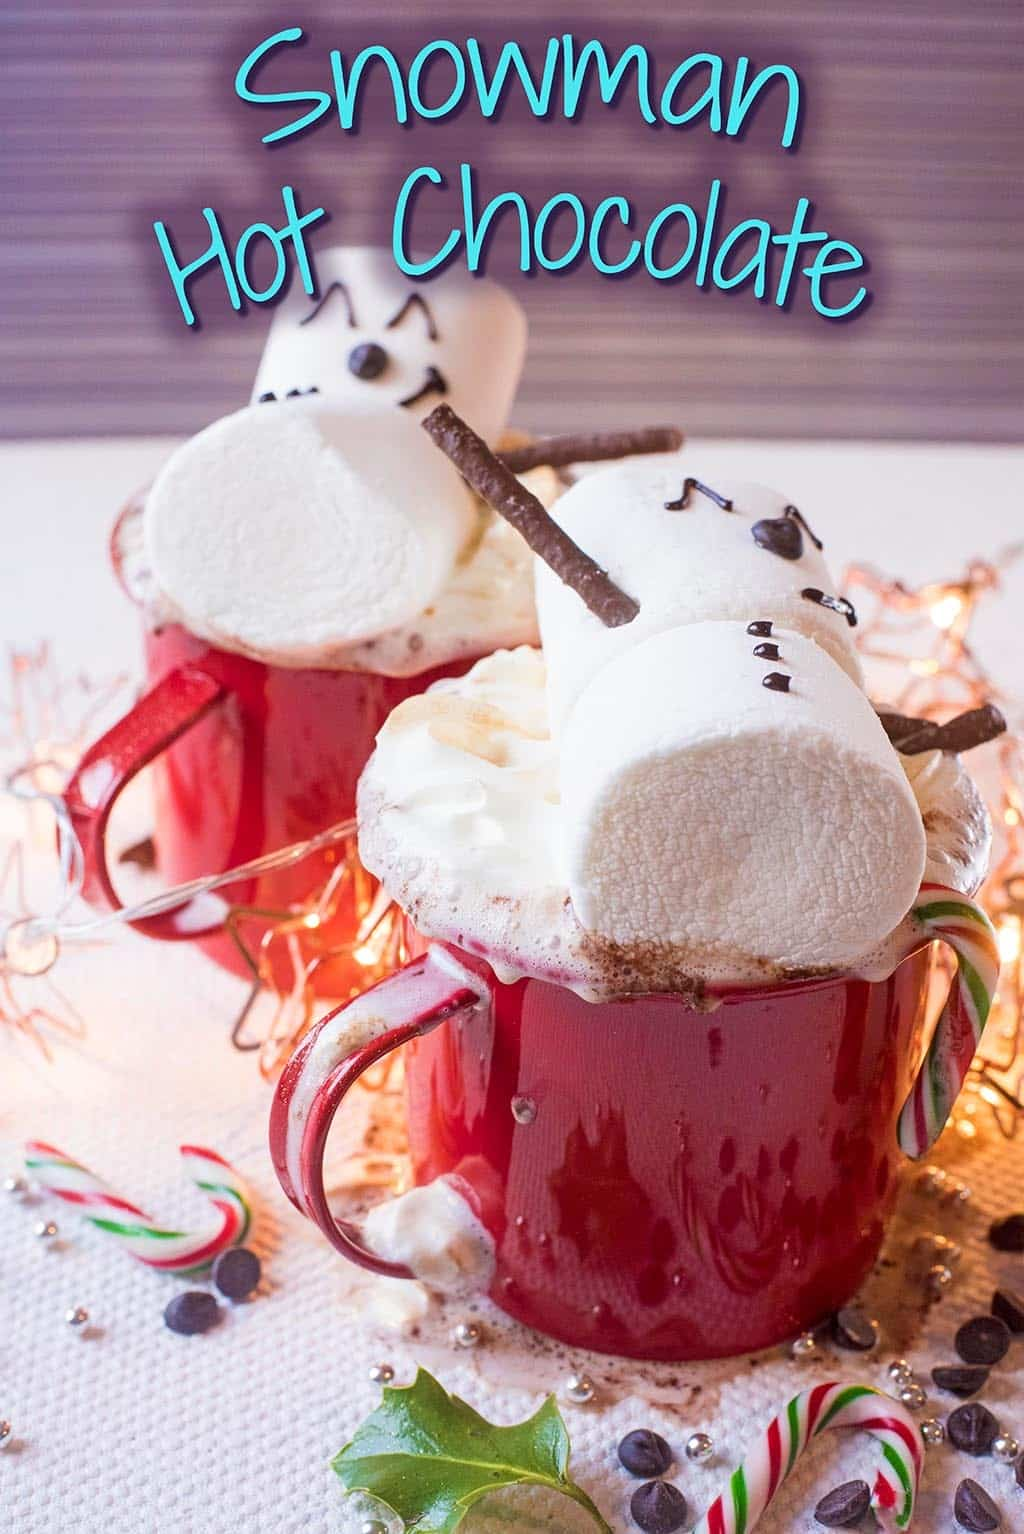 Christmas Snowman Hot Chocolate title picture